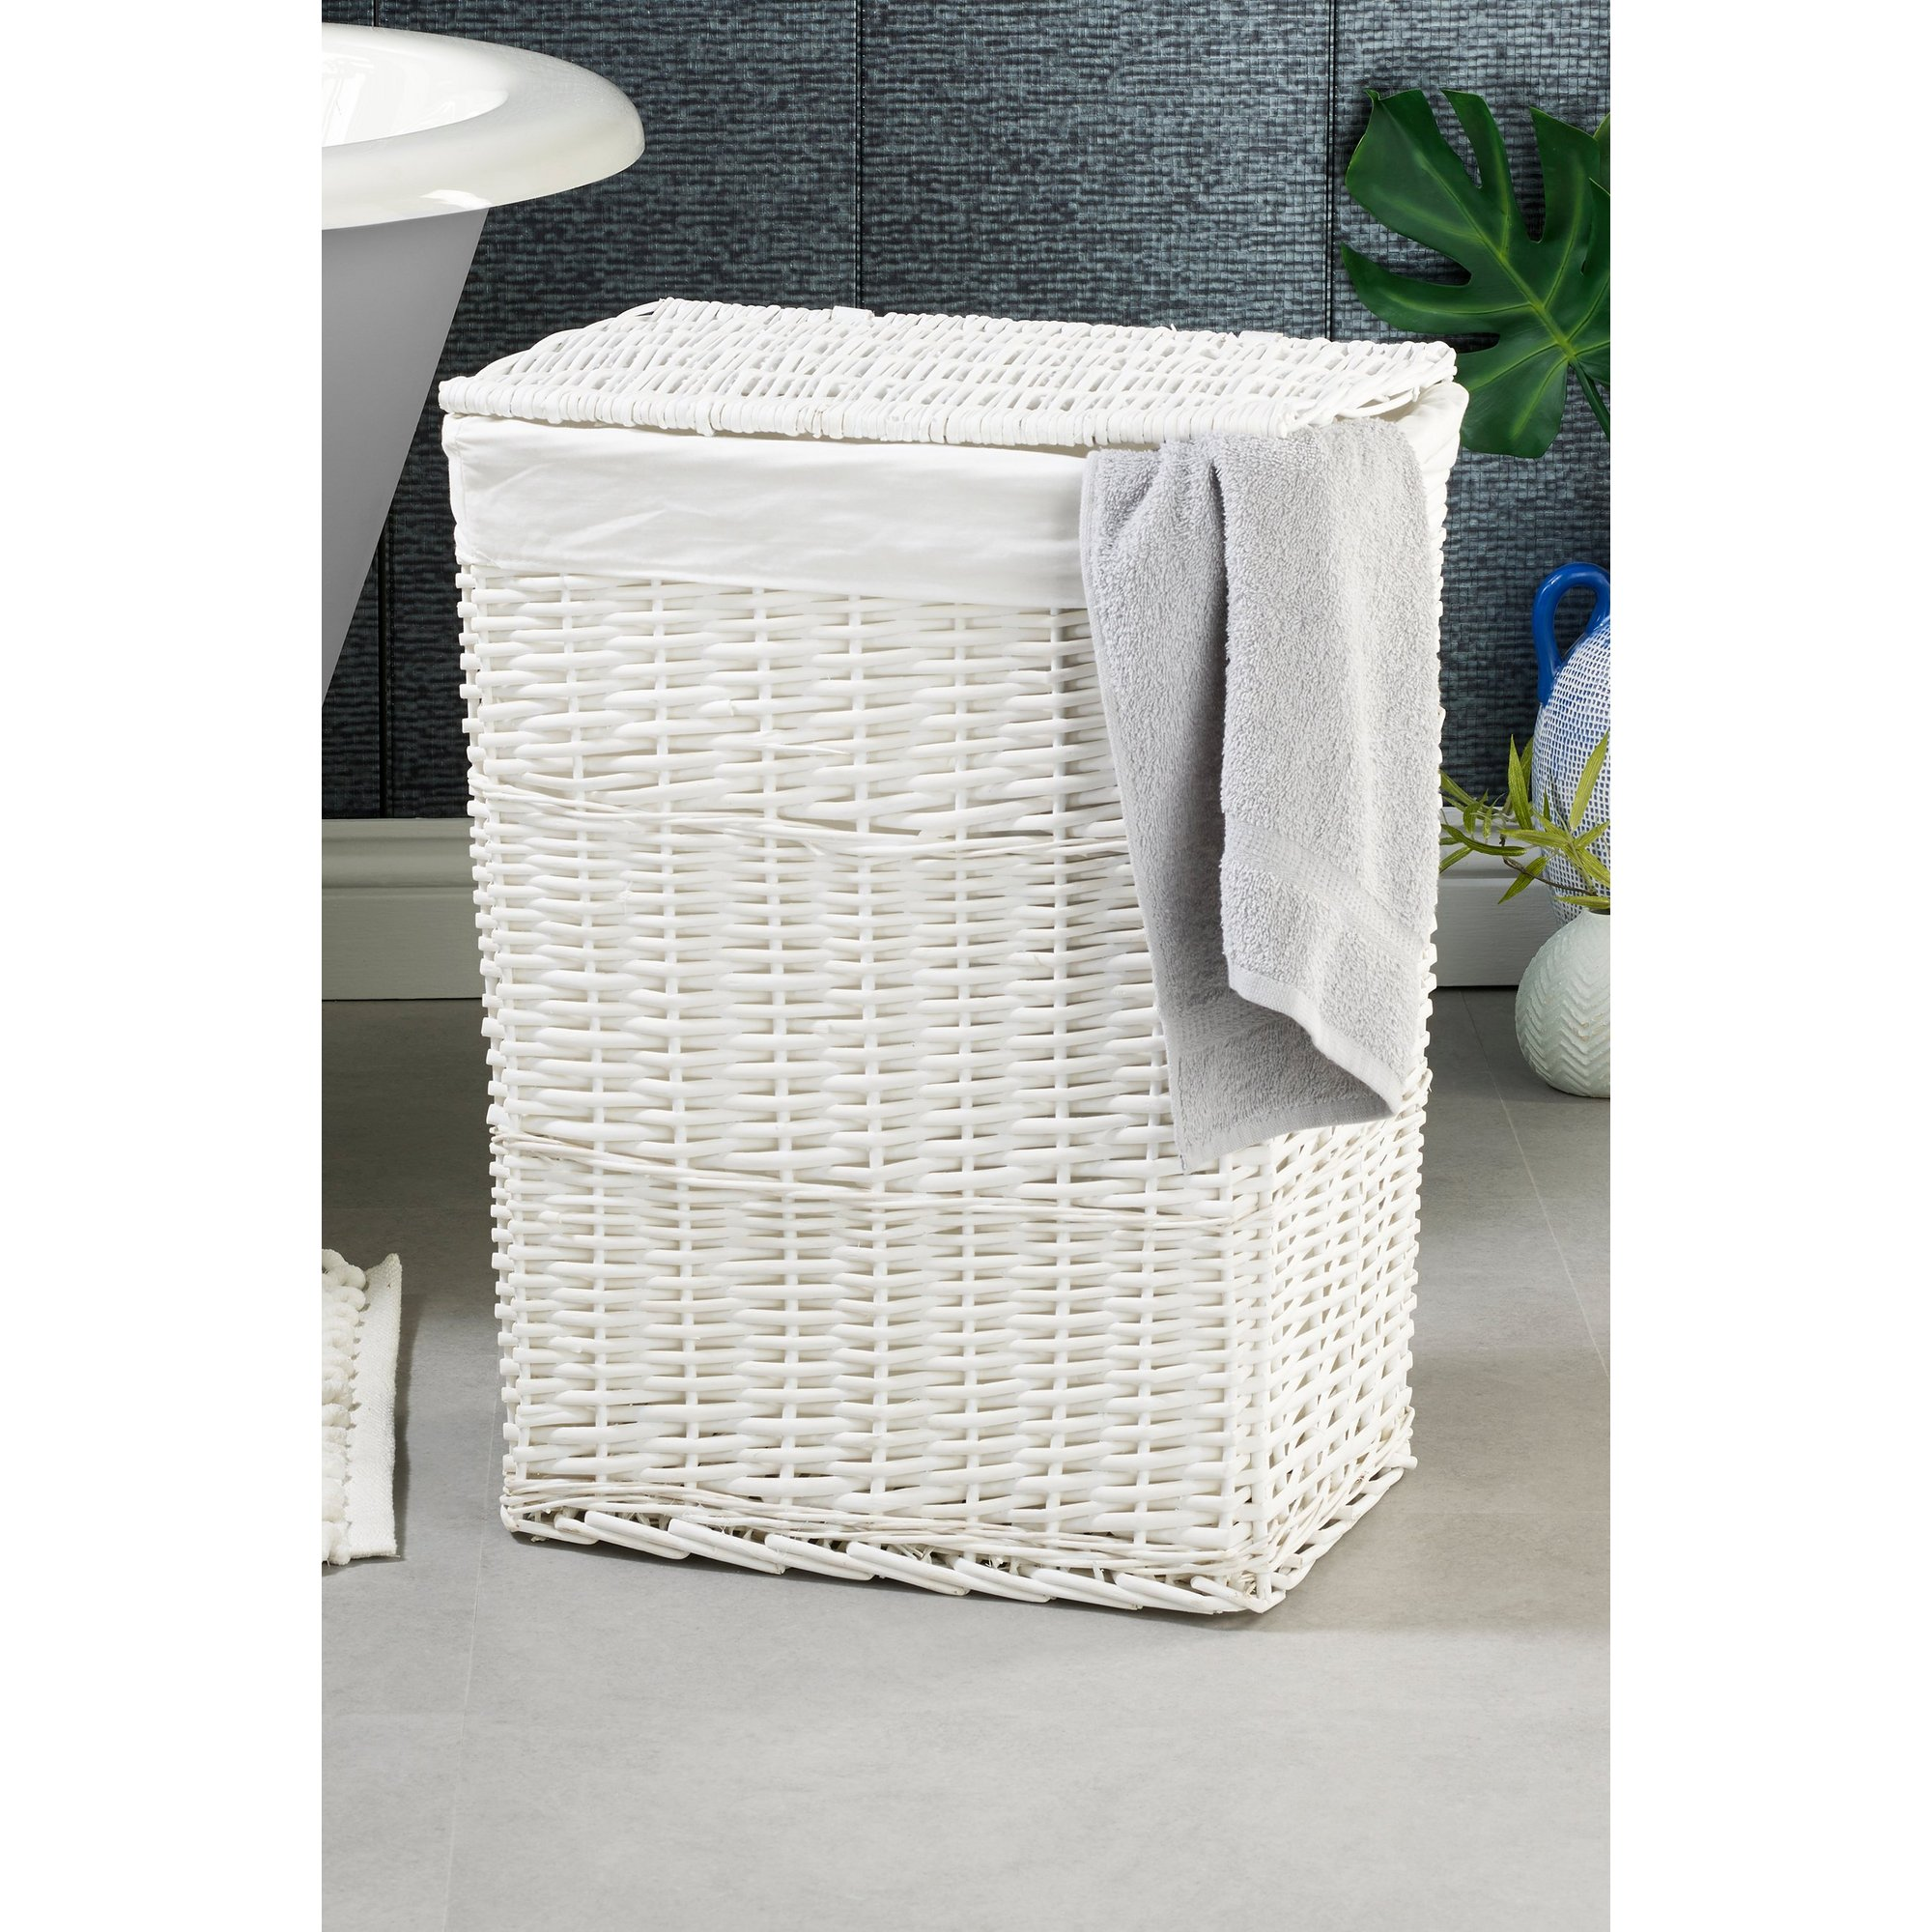 Image of Arpan Large Wicker Laundry Basket